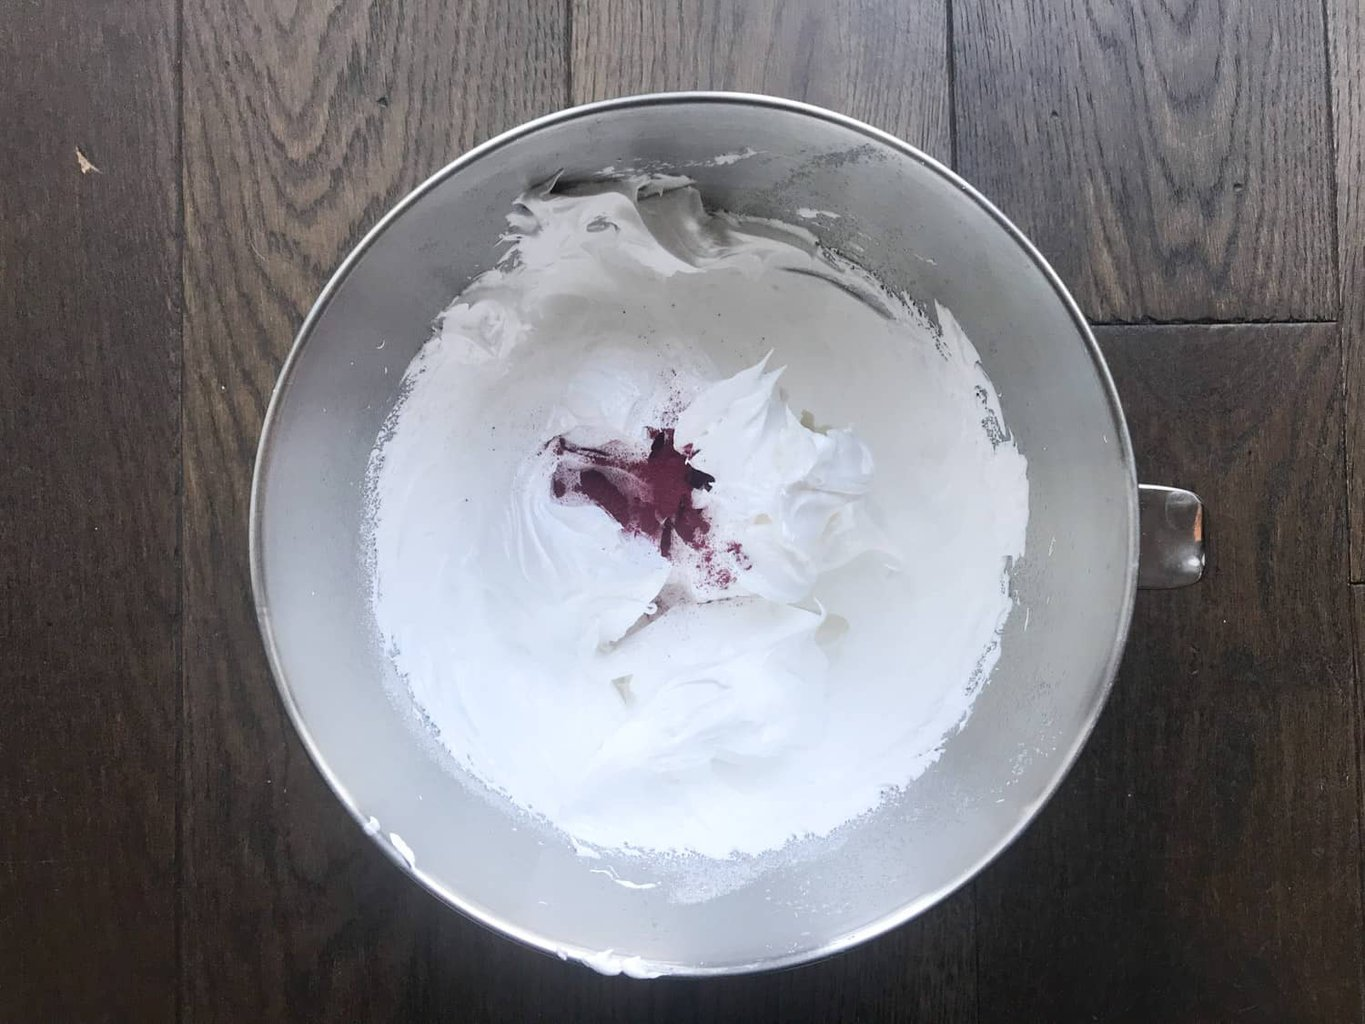 Adding pink powder to meringue mixture